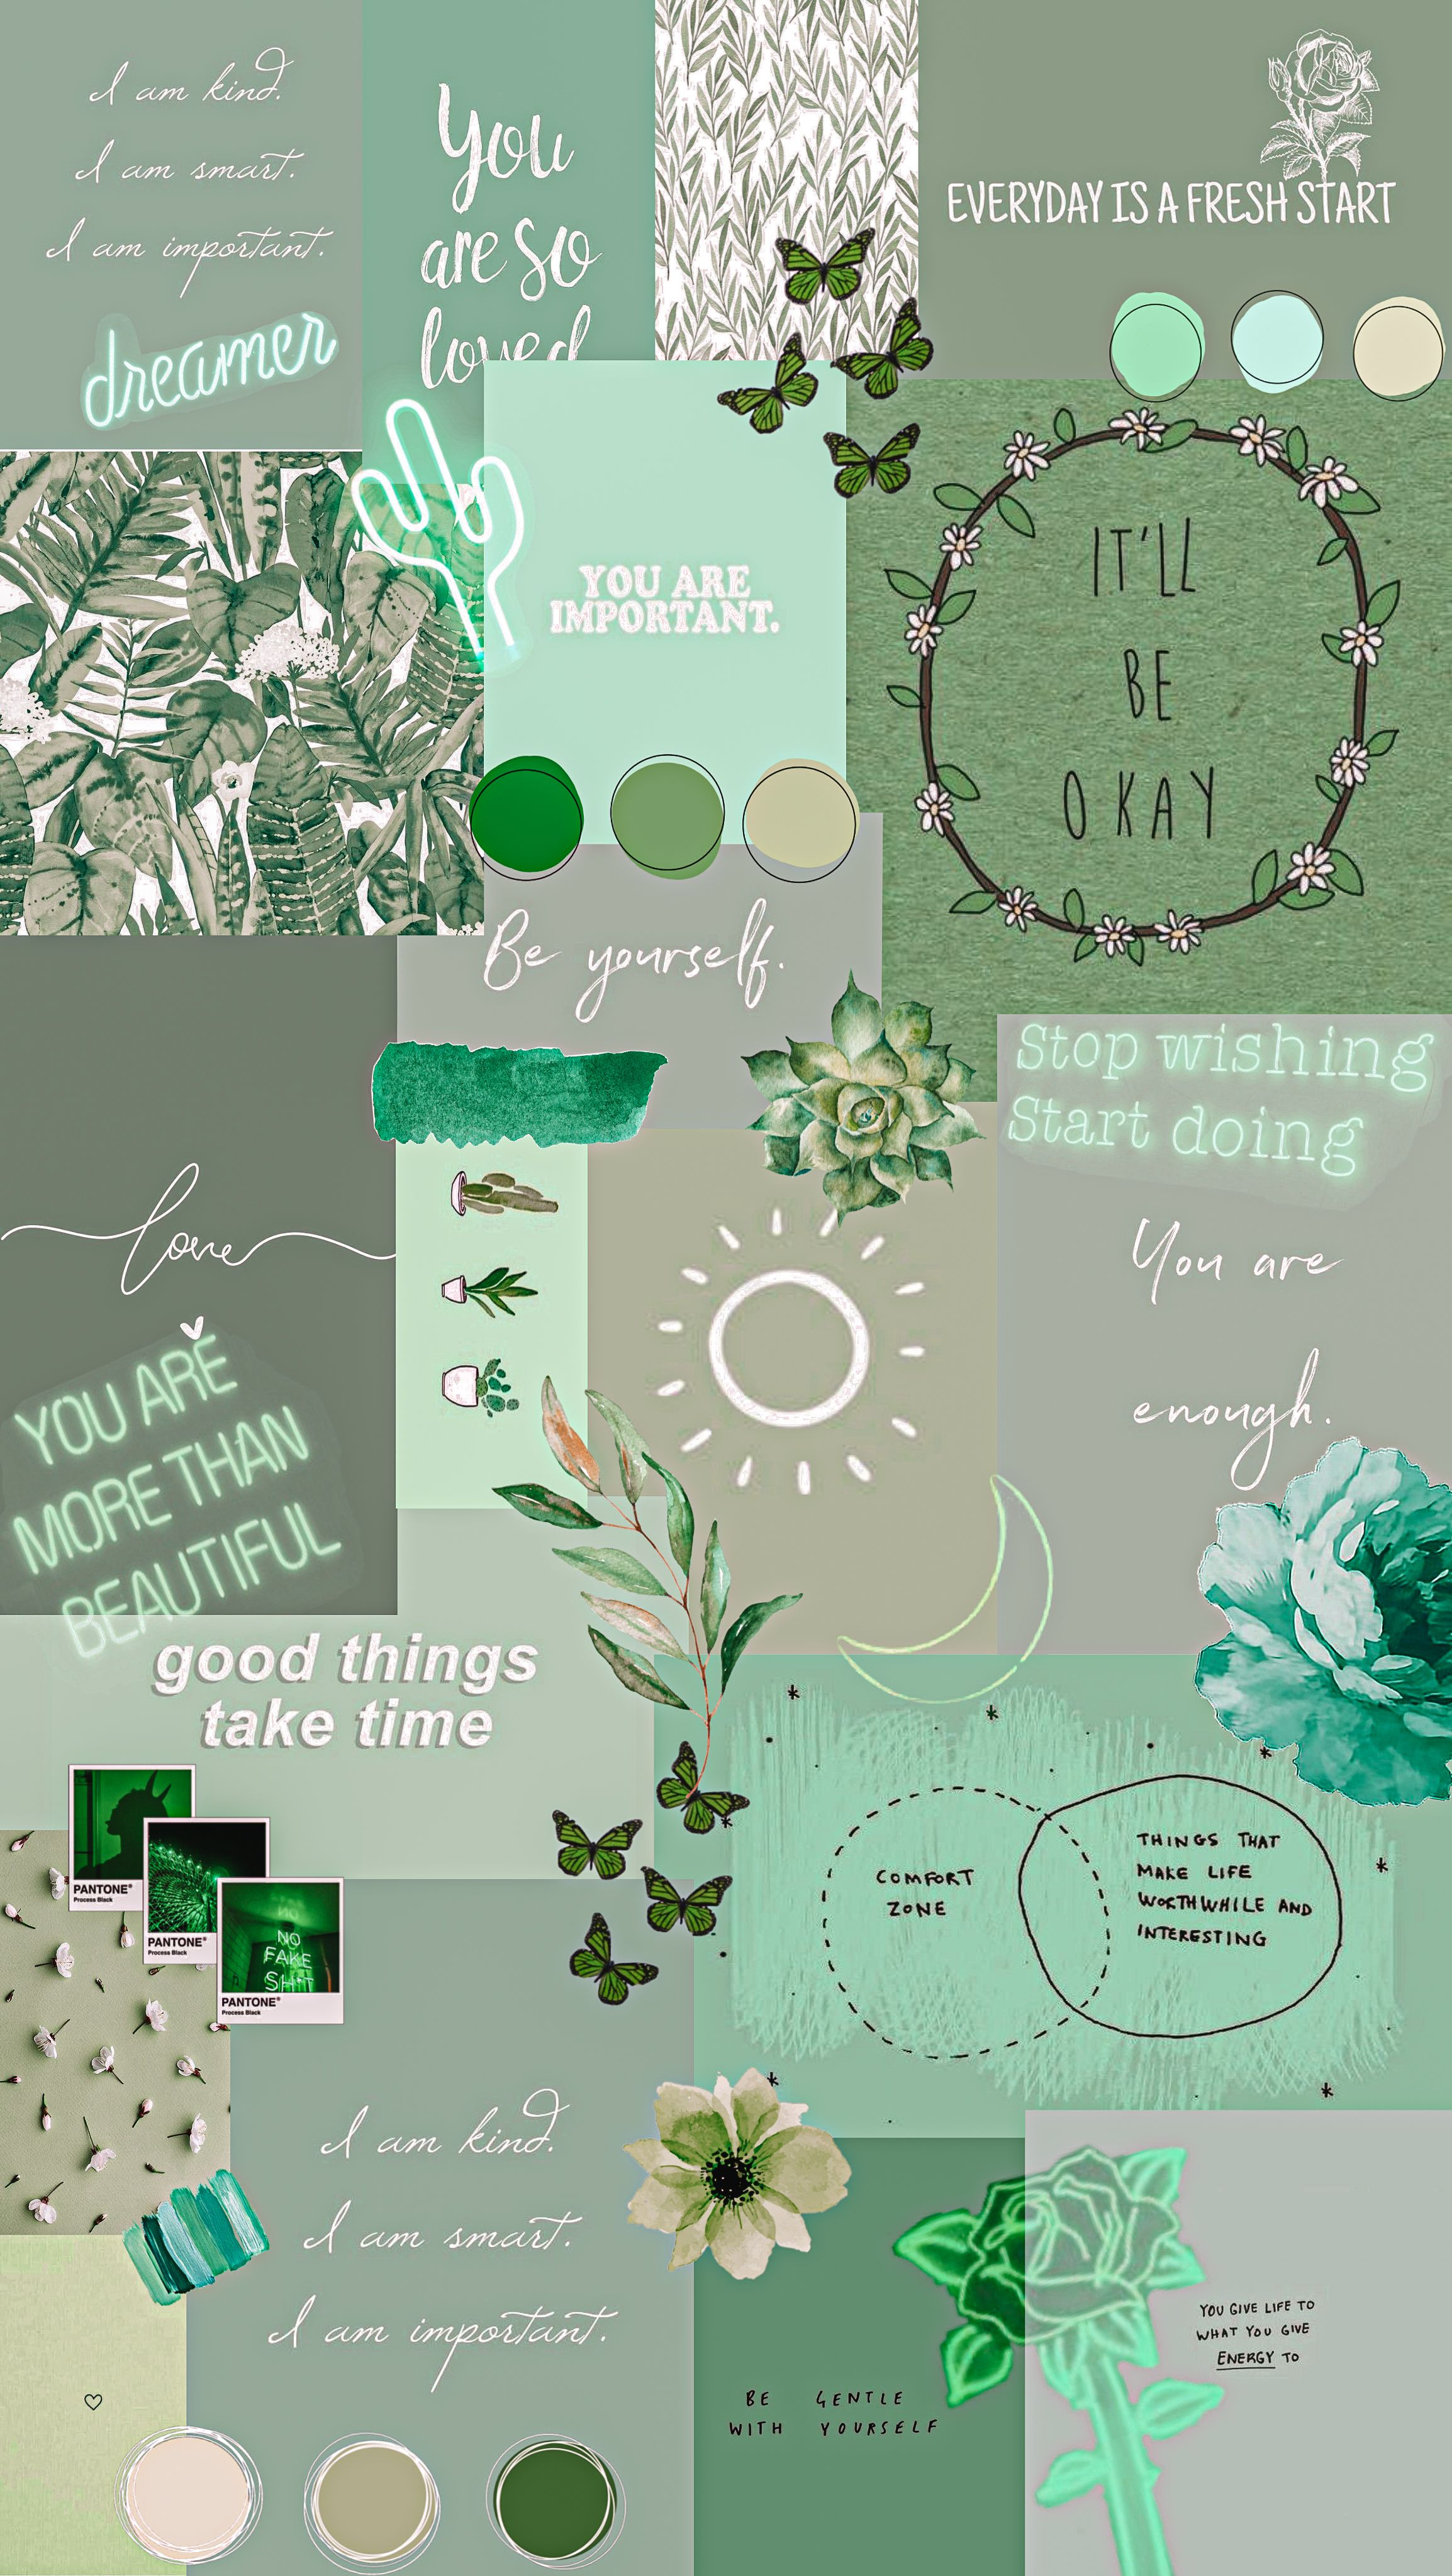 Pin By Meagan Hill On Collage In 2020 Iphone Wallpaper Tumblr Aesthetic Iphone Wallpaper Green Aesthetic Iphone Wallpaper